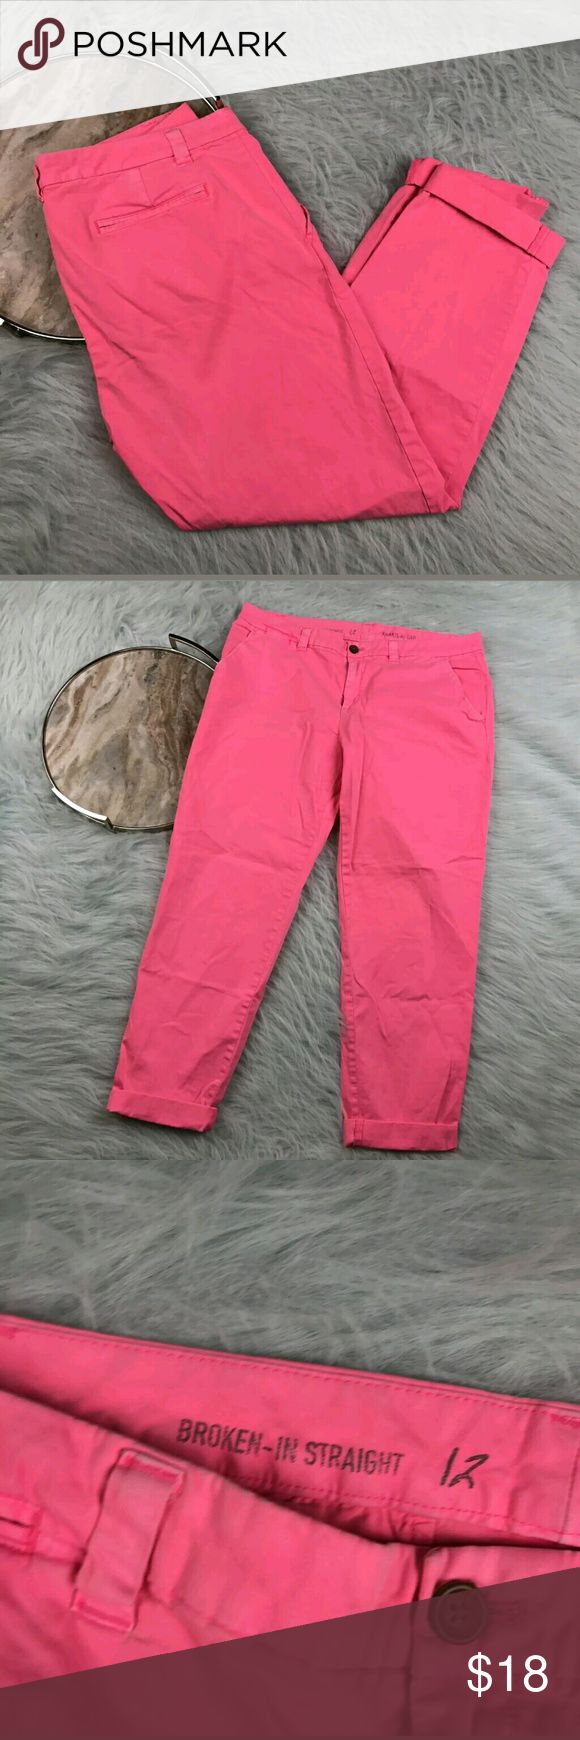 """Gap Broken In Straight Leg Neon Pants Gap neon pink straight leg khaki pants. Womens size 12. Gently used, without flaws. See pictures for details.  Waist laying flat - 18"""" Rise - 10"""" Inseam - 29""""  Inventory 04122017 GAP Pants"""